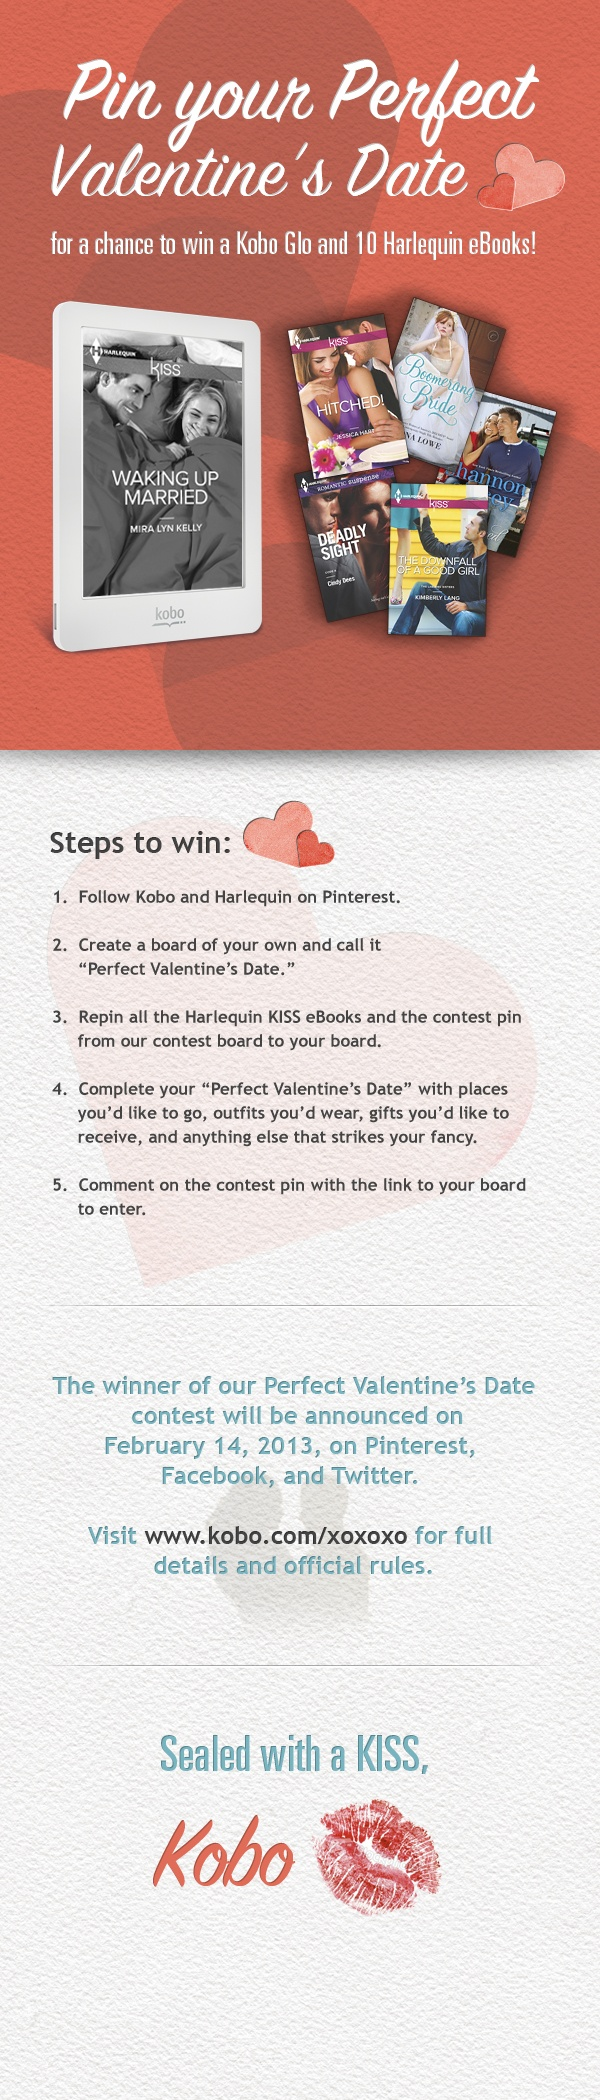 Pin Your Perfect Valentine's Date for a chance to win a Kobo Glo and 10 Harlequin eBooks! #KoboContest